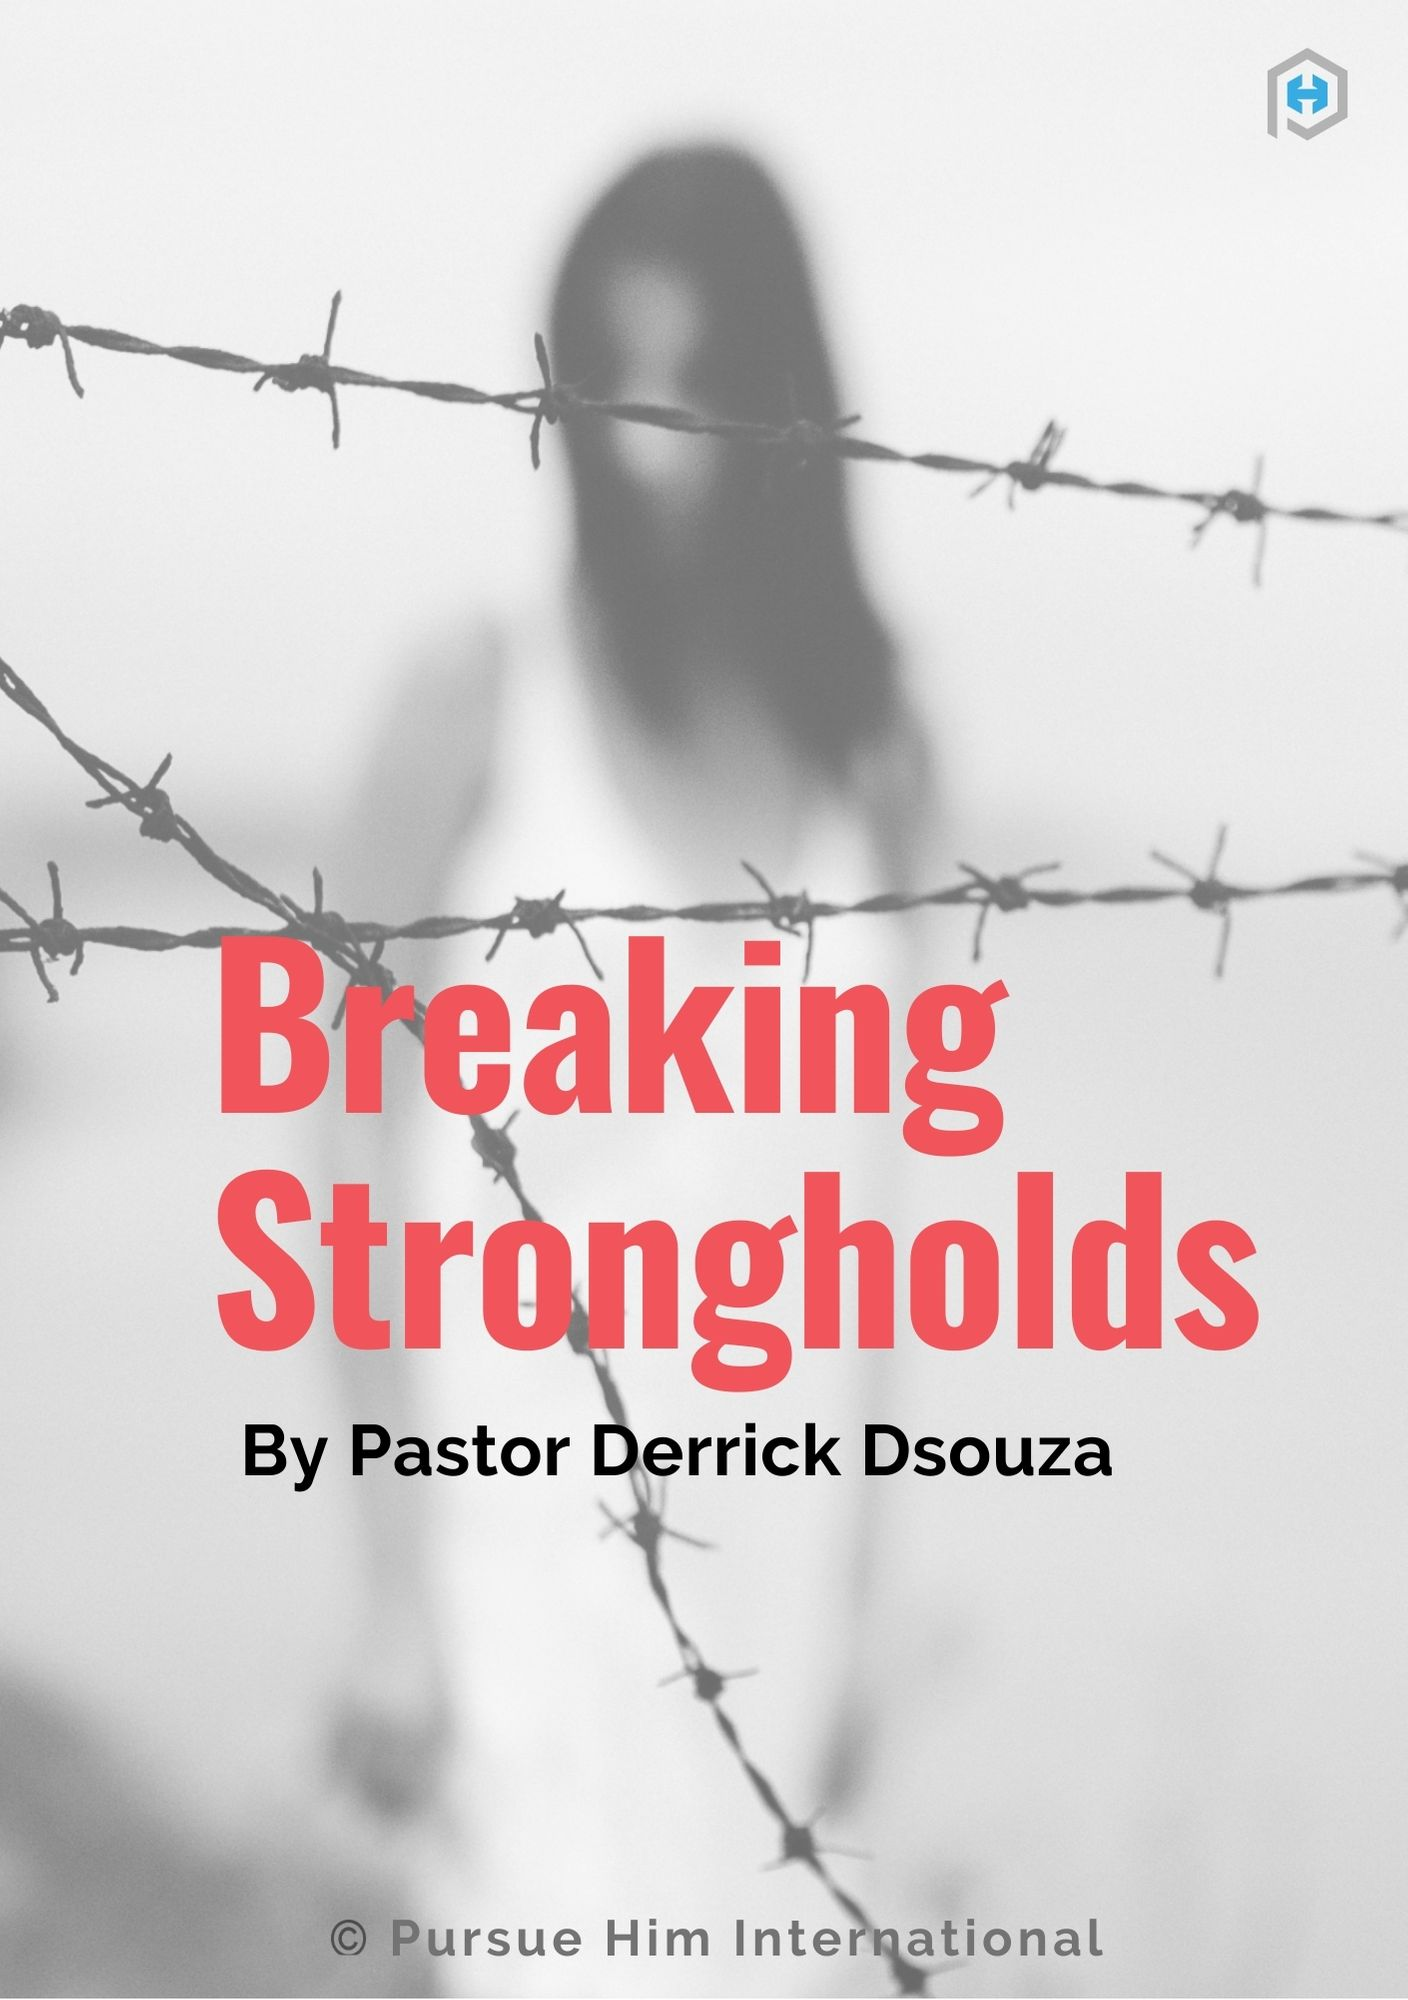 Breaking strongholds and bondages